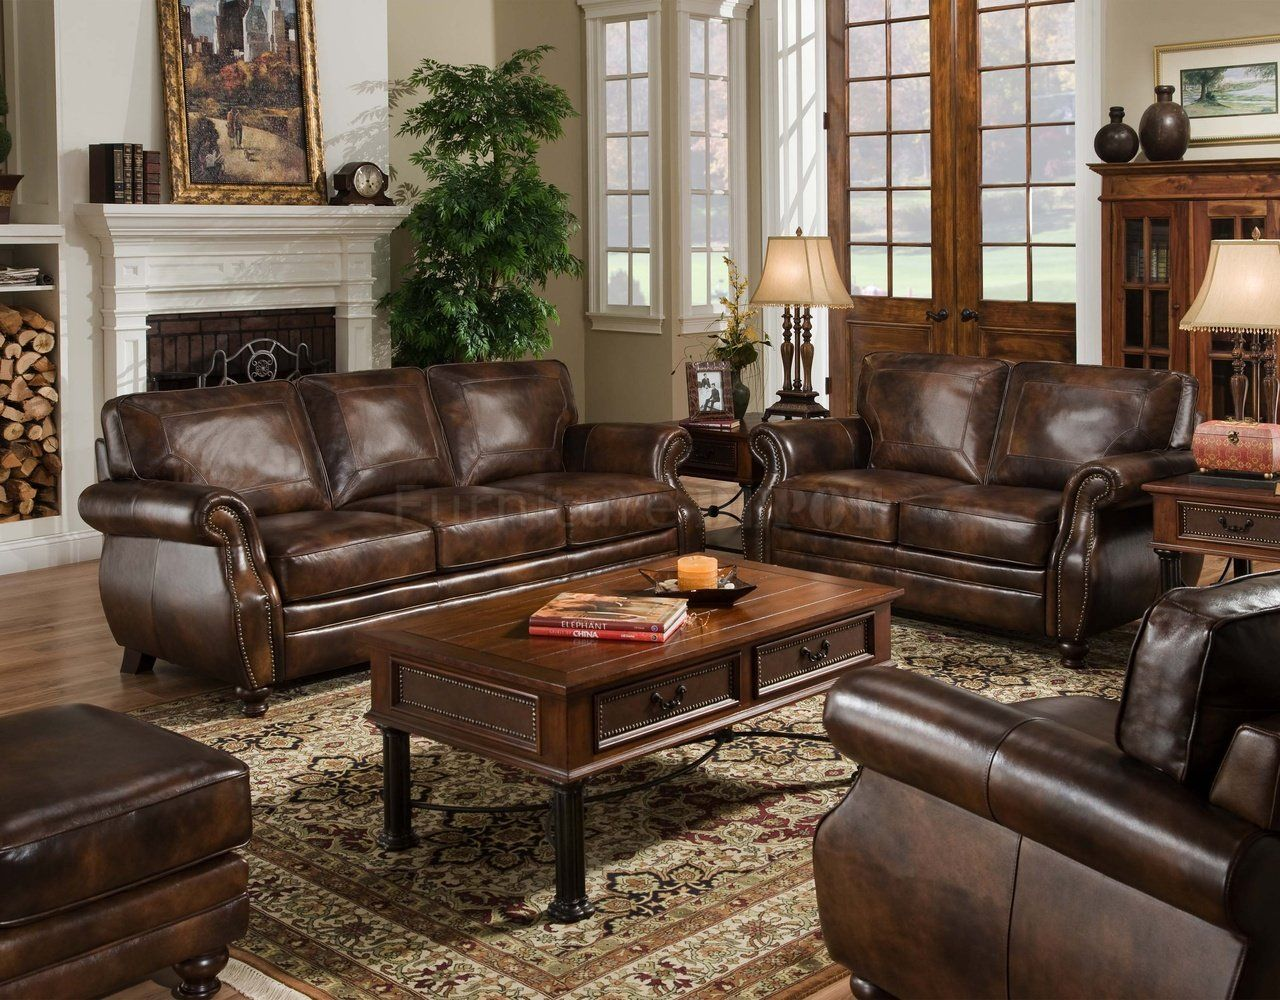 comfy leather couch australia   Google Search   Formal ...